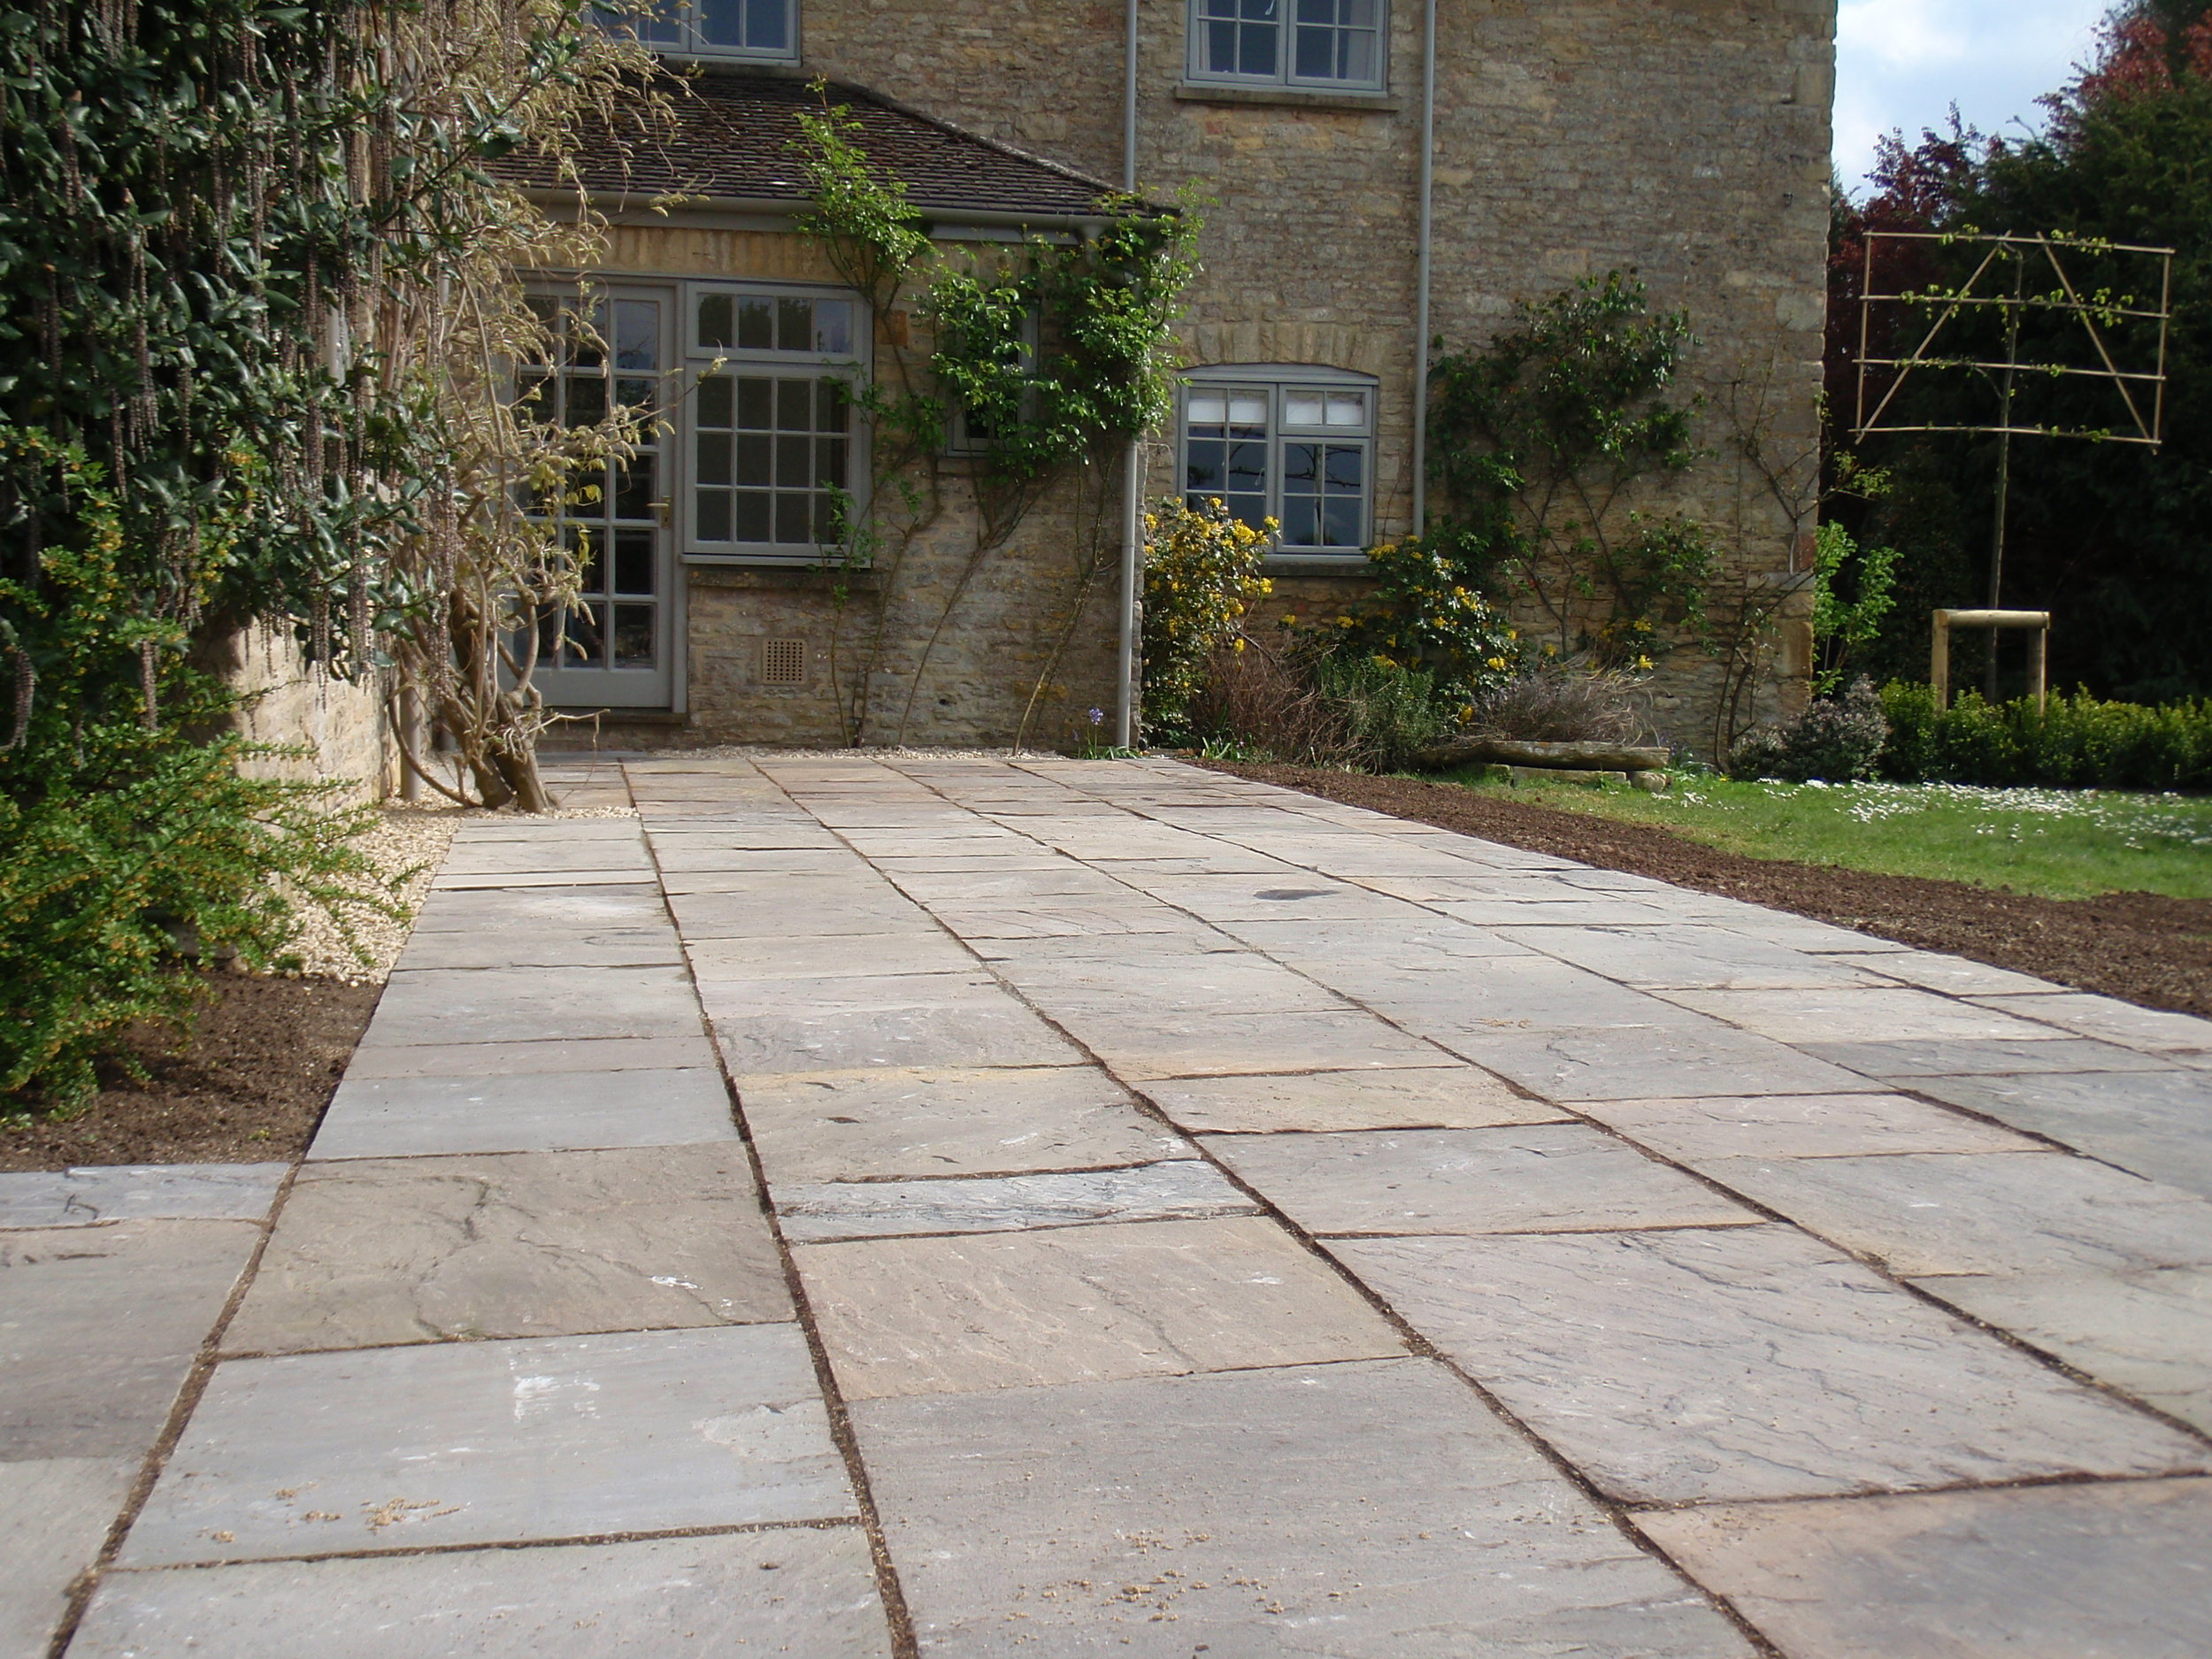 Paving-&-Driveways-Evenfield.jpg